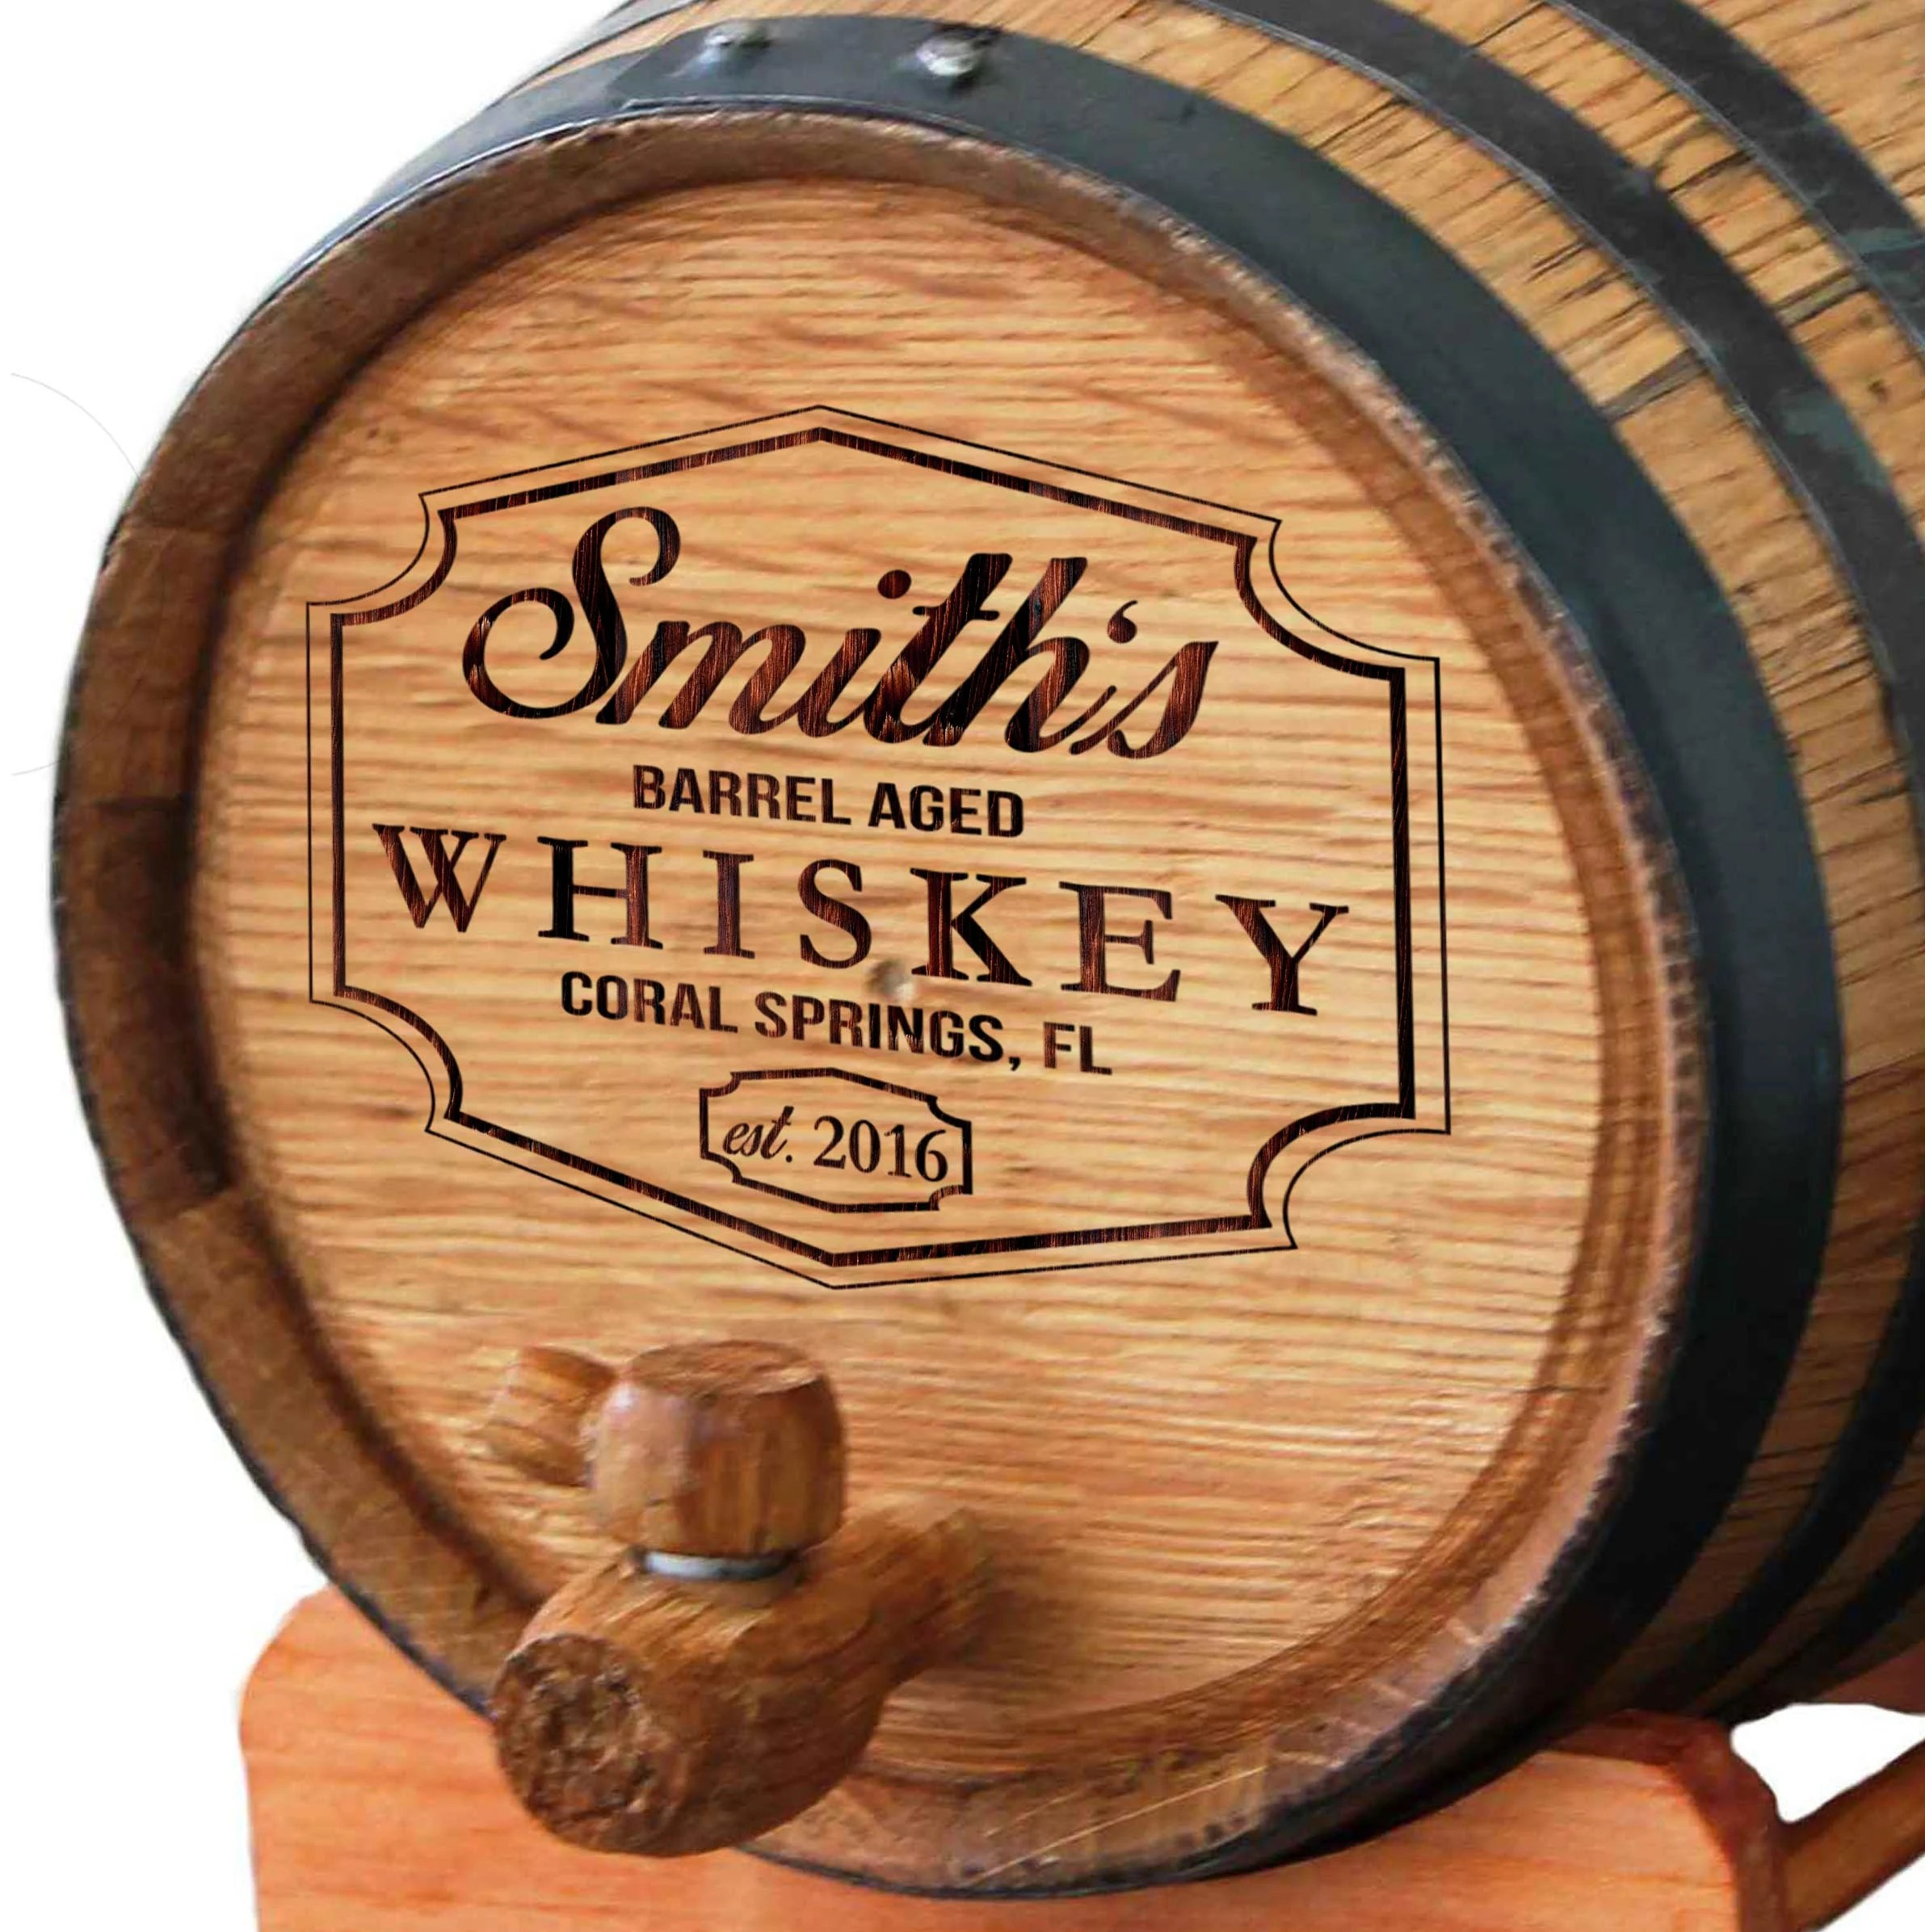 Personalized Wine Barrel Bourbon Barrel Whiskey Barrel image 1